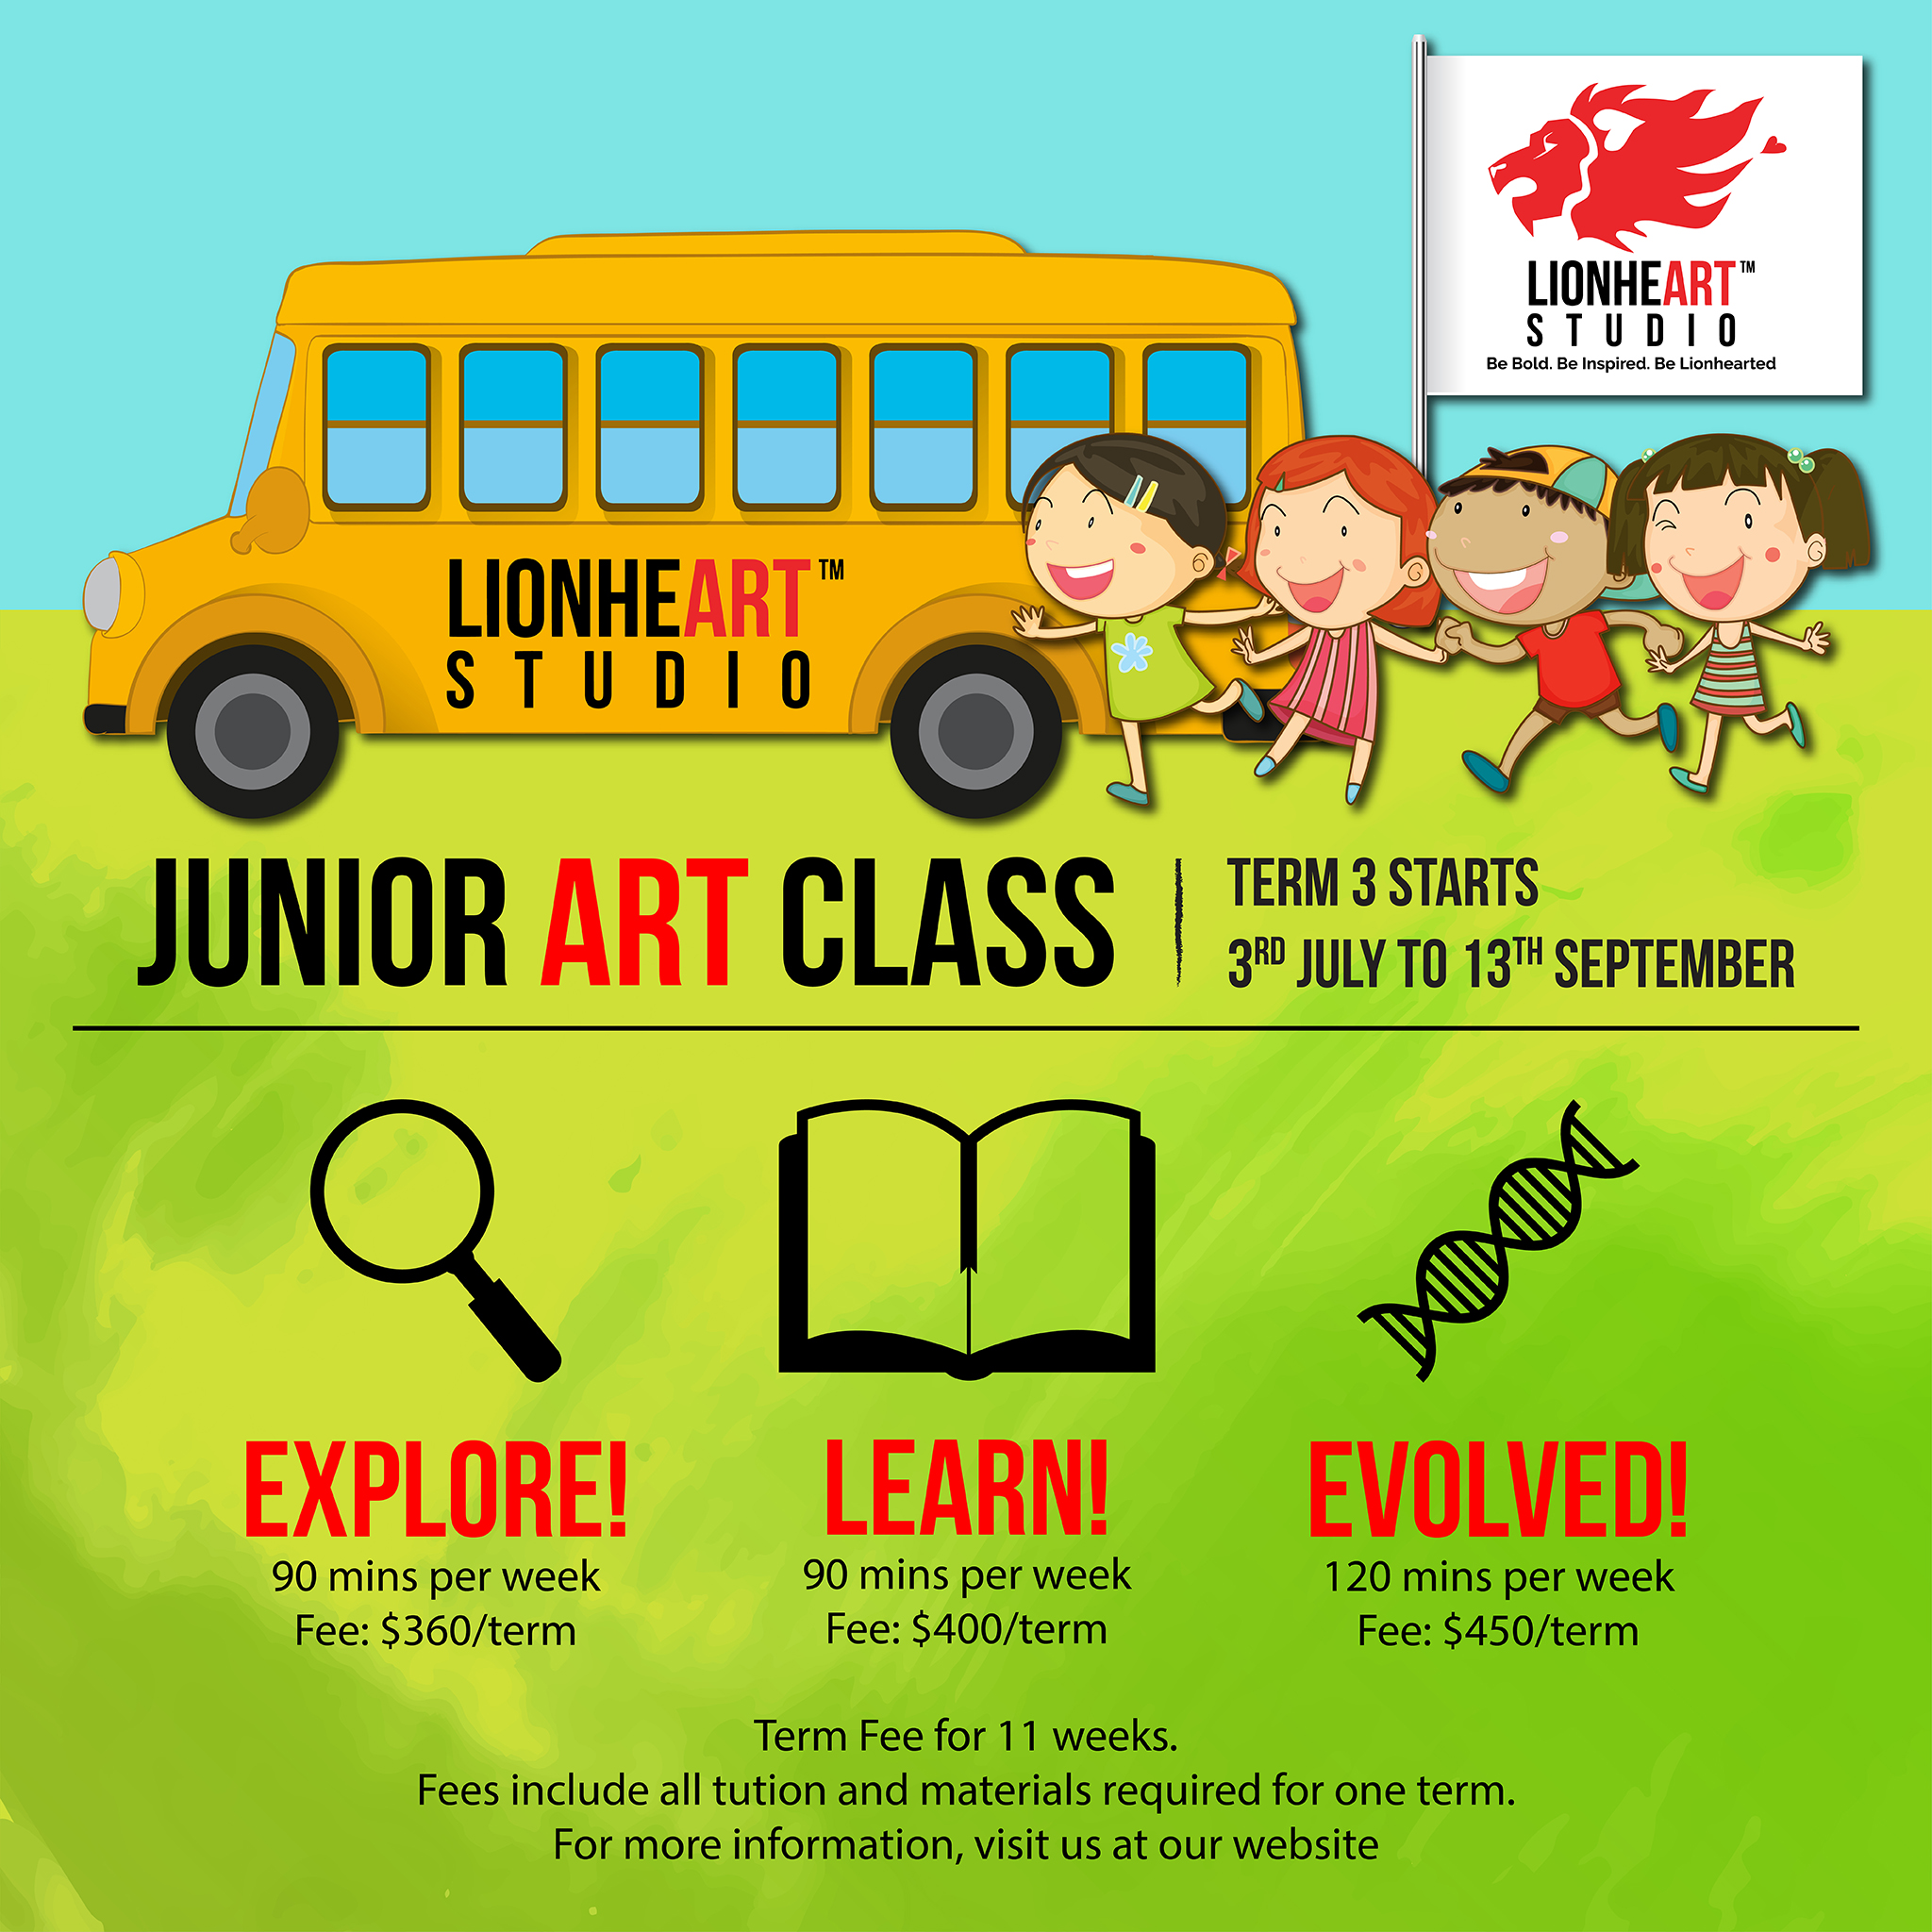 JuniorArtClass_EDM